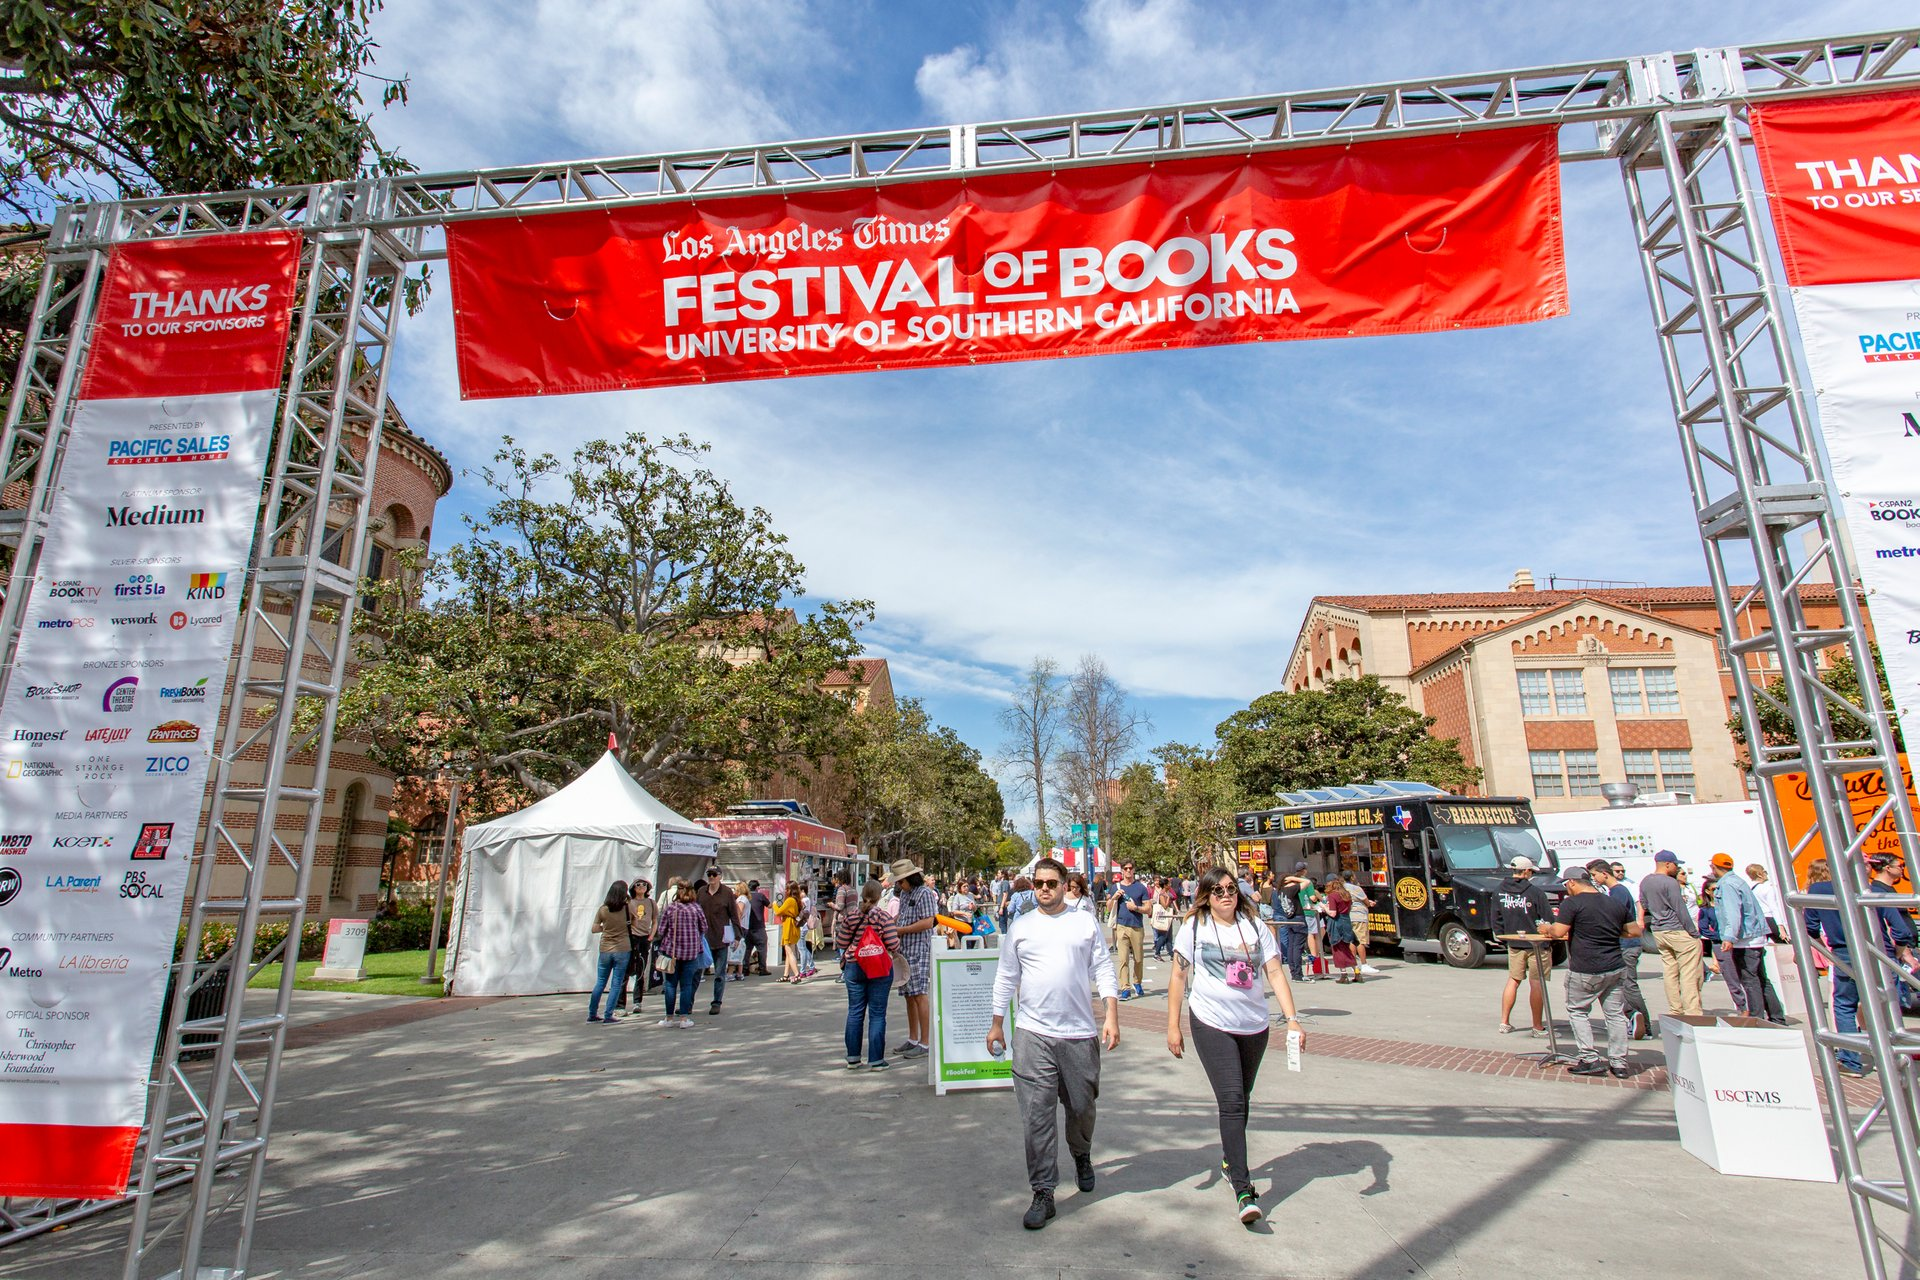 Los Angeles Times Festival of Books in Los Angeles 2019 - Best Time